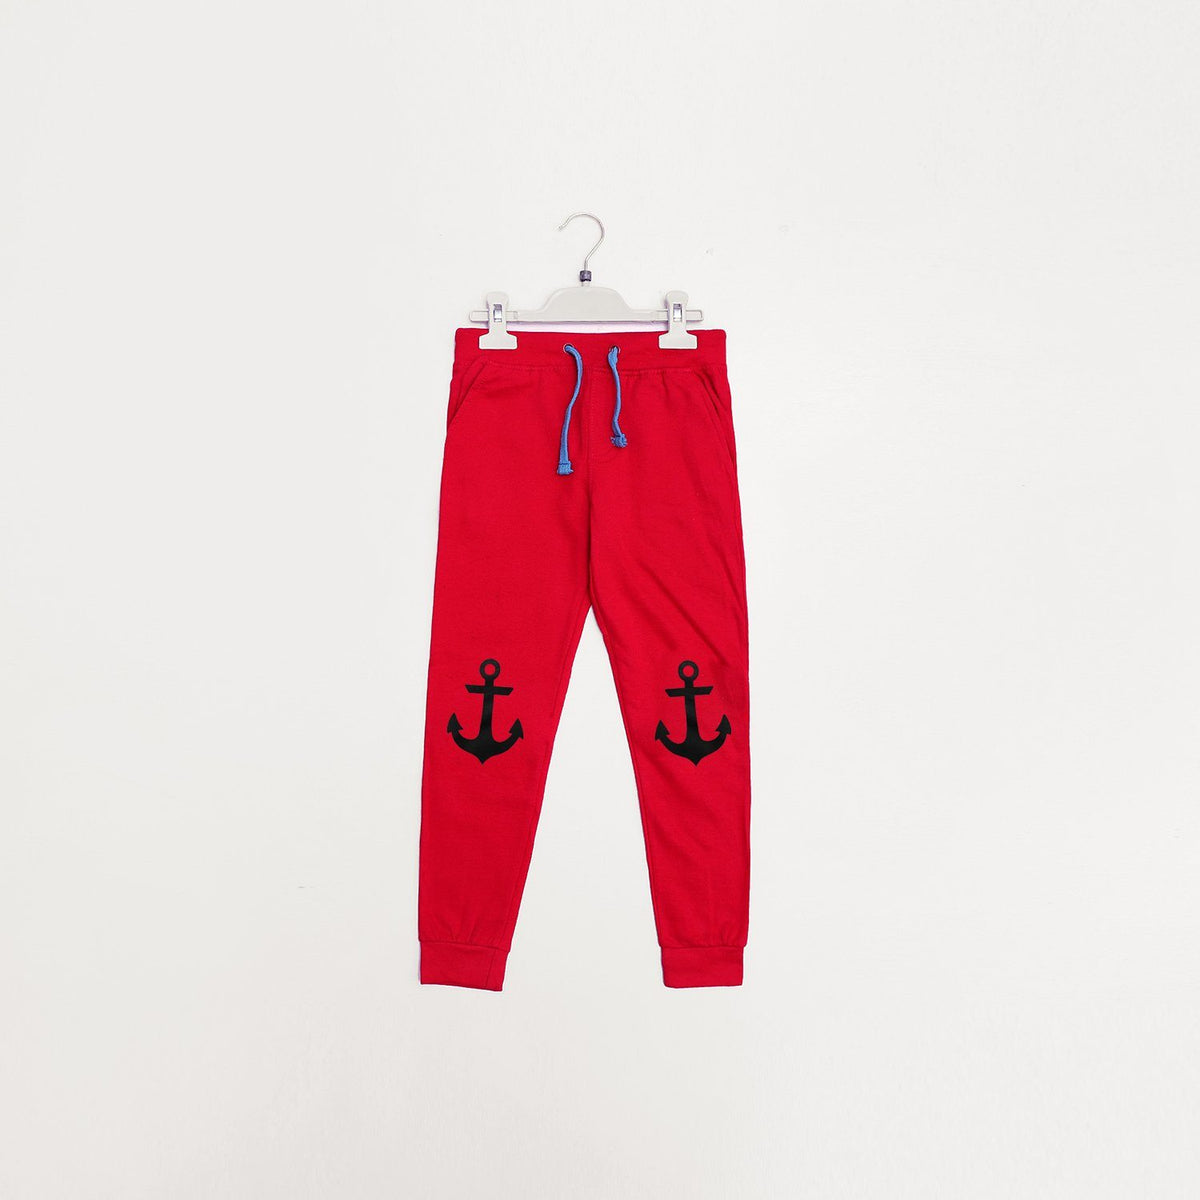 Pepco boys red 'slim fit' printed jogger trouser (1496)